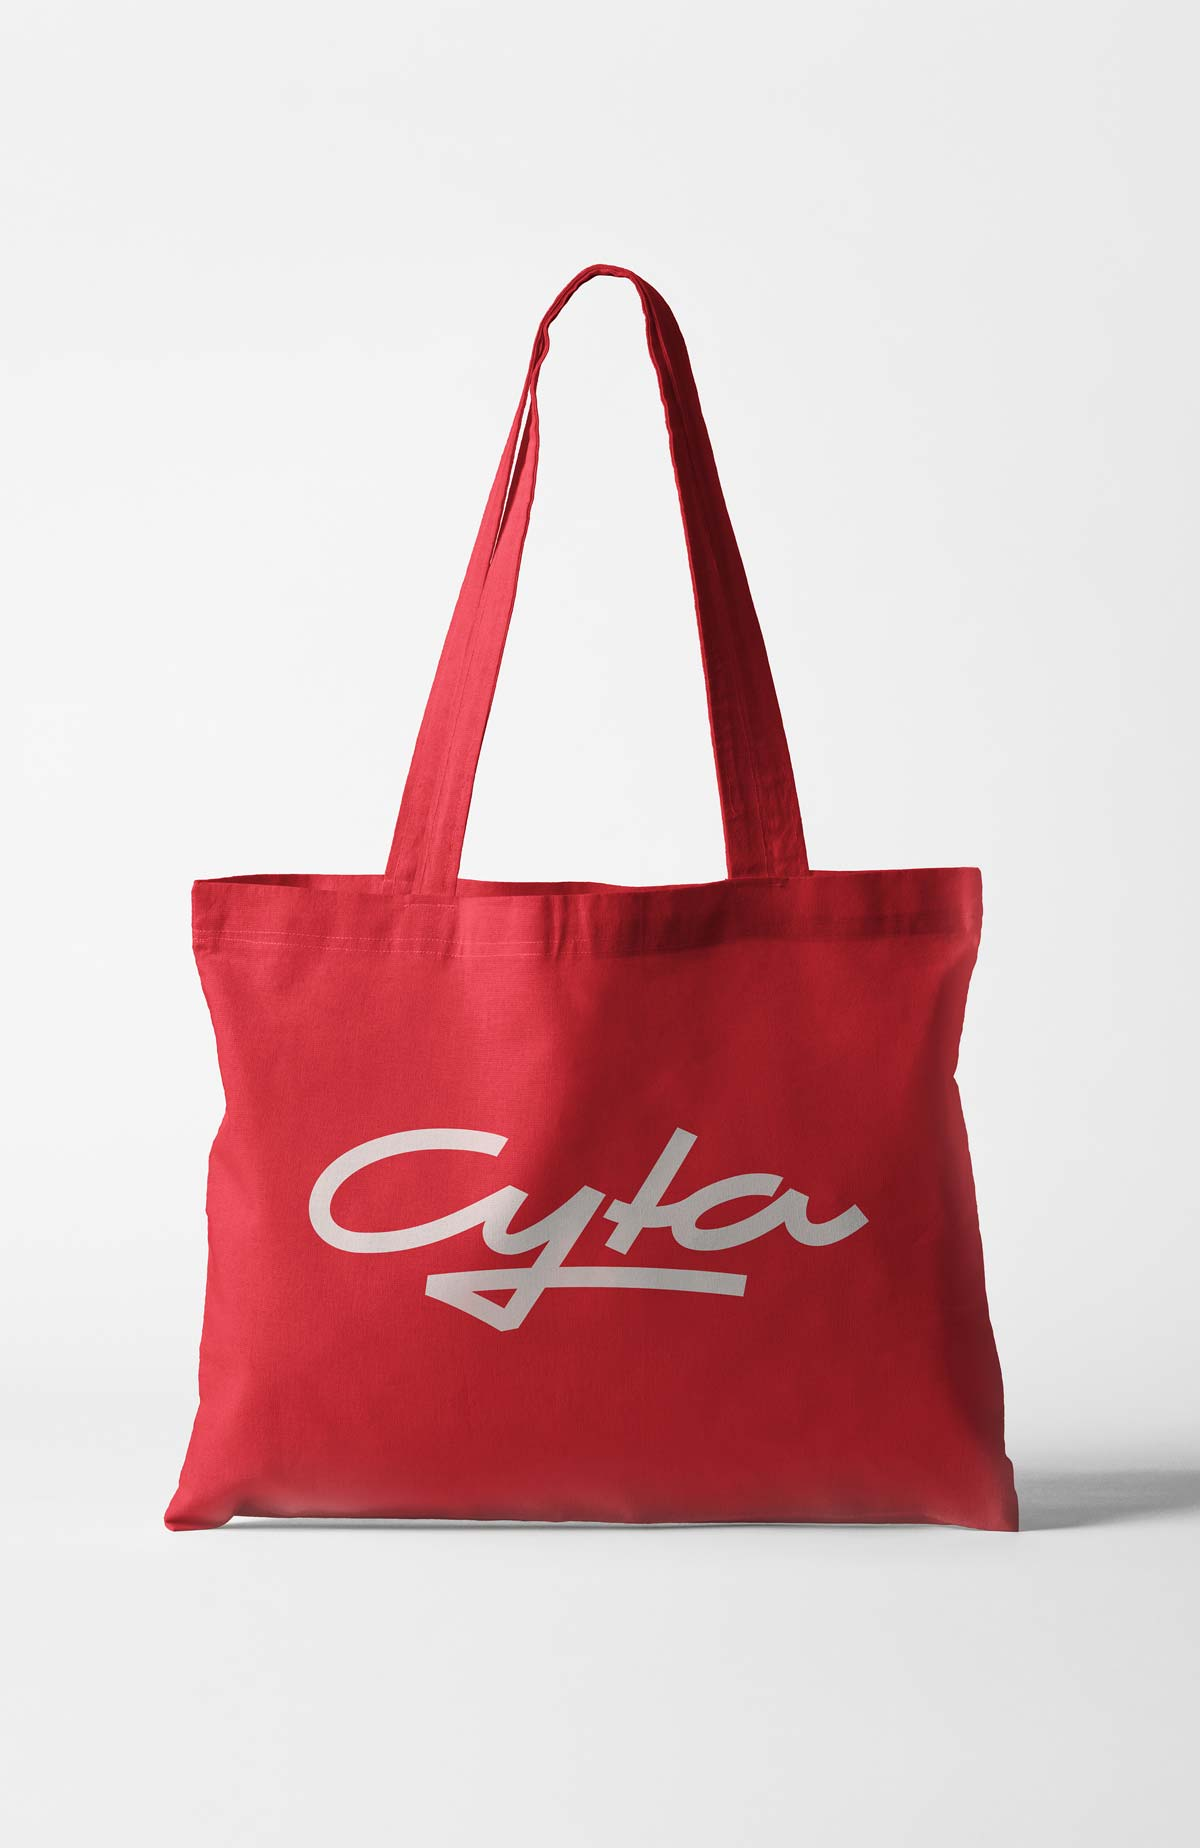 Cyta Shoppingwelt large tote bag with cyta logo